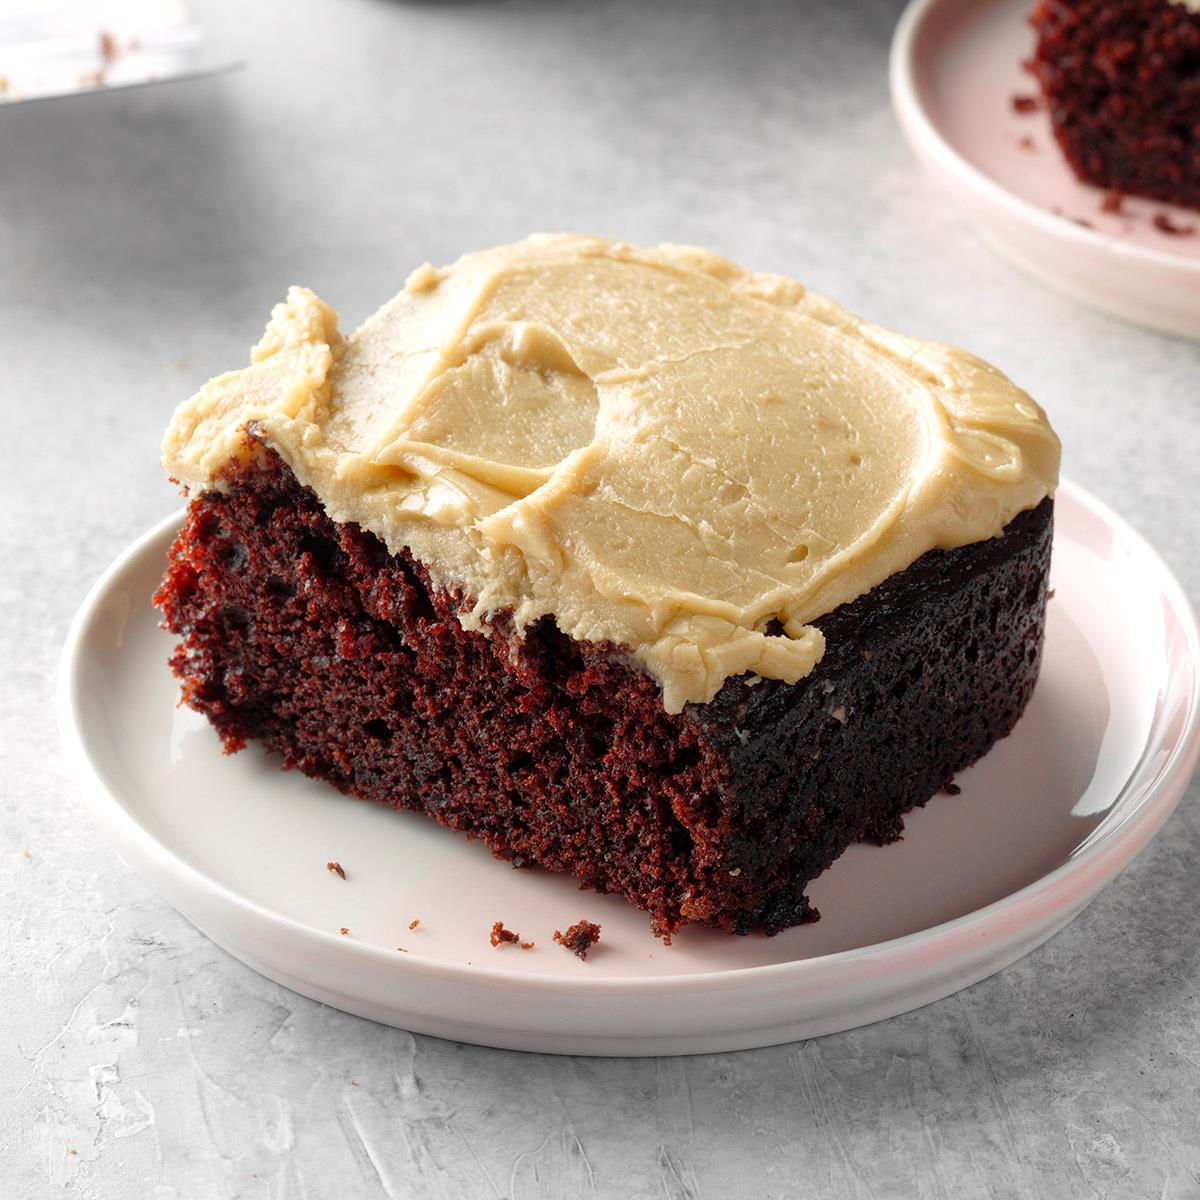 Chocolate Mayonnaise Cake Recipe How To Make It Taste Of Home